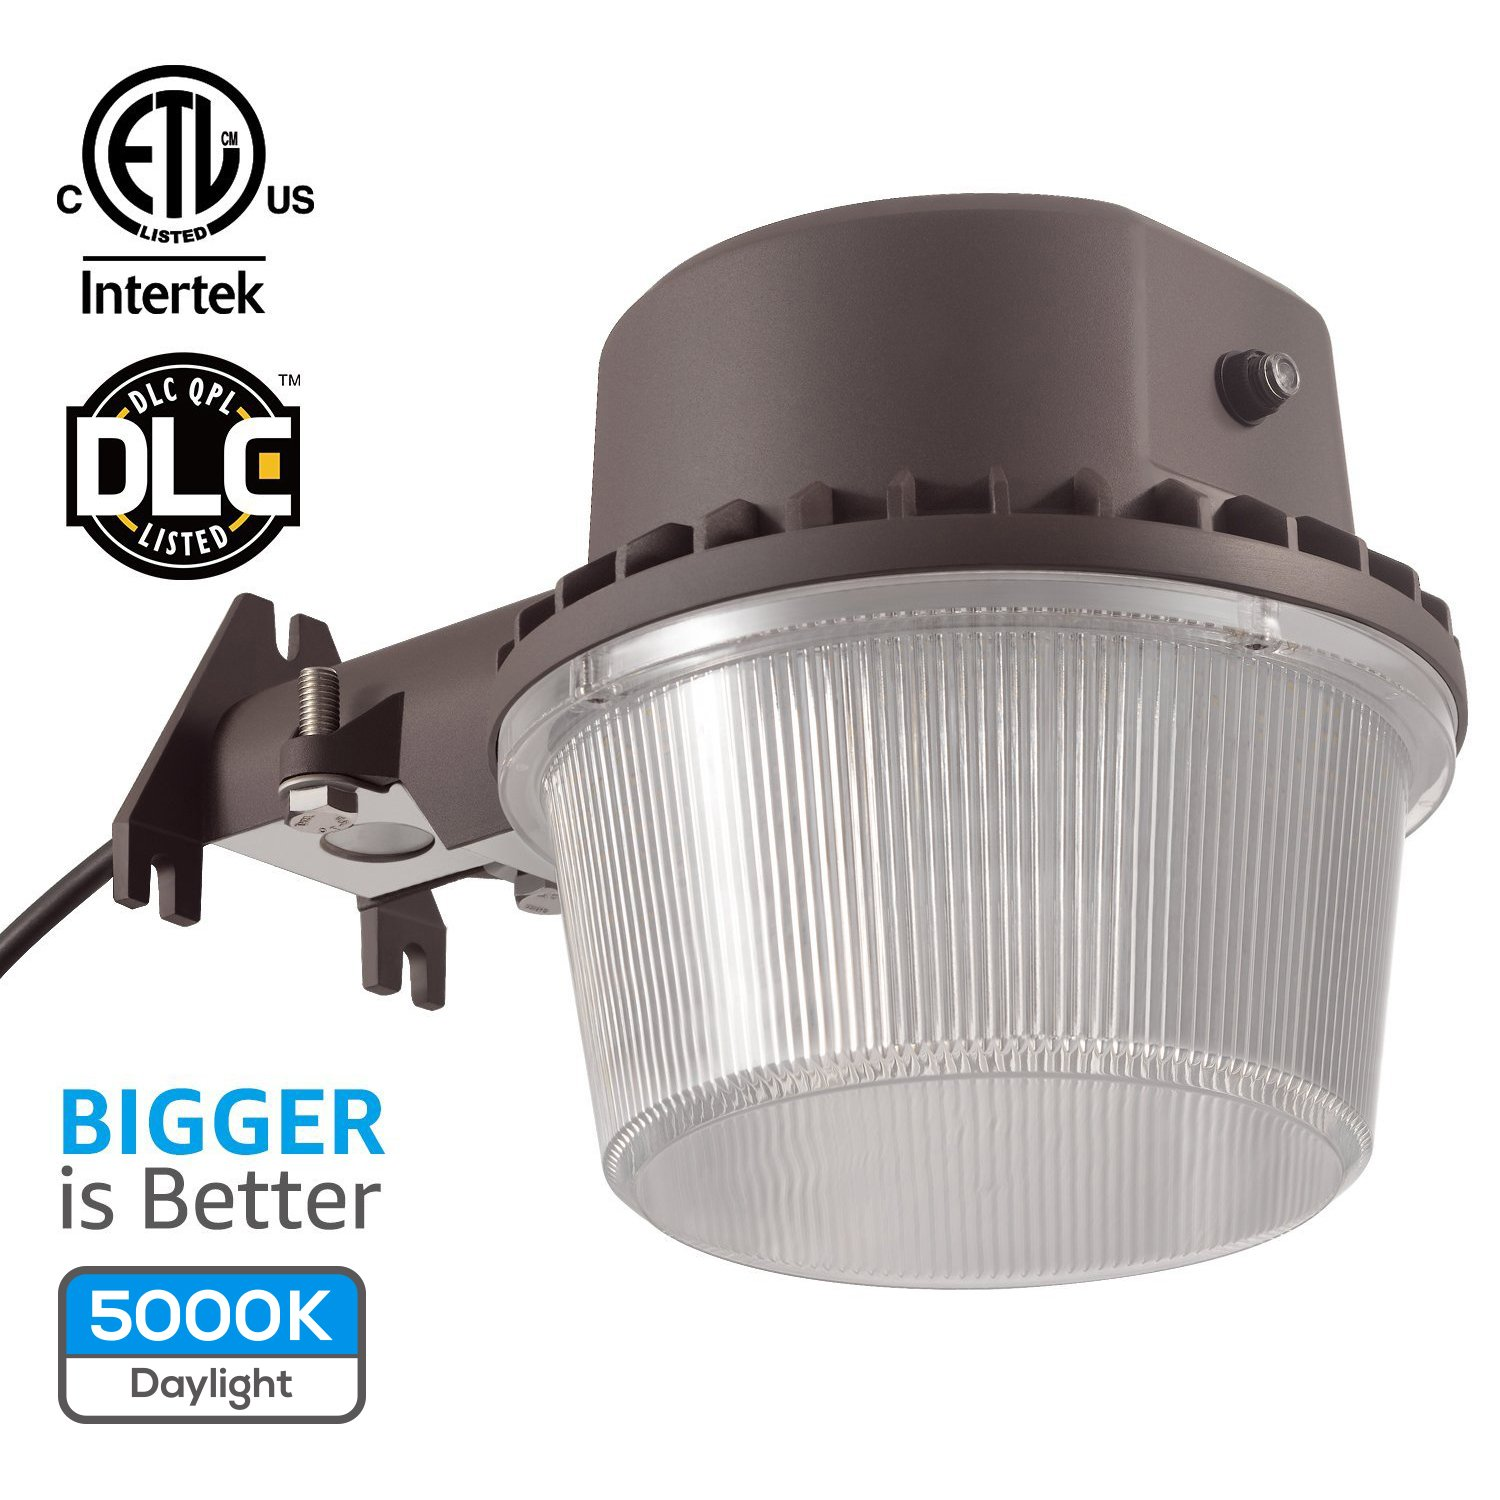 TORCHSTAR Dusk-to-dawn LED Outdoor Barn Light (Photocell Included), 35W (250W Equiv.), 5000K Daylight Floodlight, DLC & ETL-listed Yard Light for Area Lighting, 5-year Warranty, Bronze by TORCHSTAR